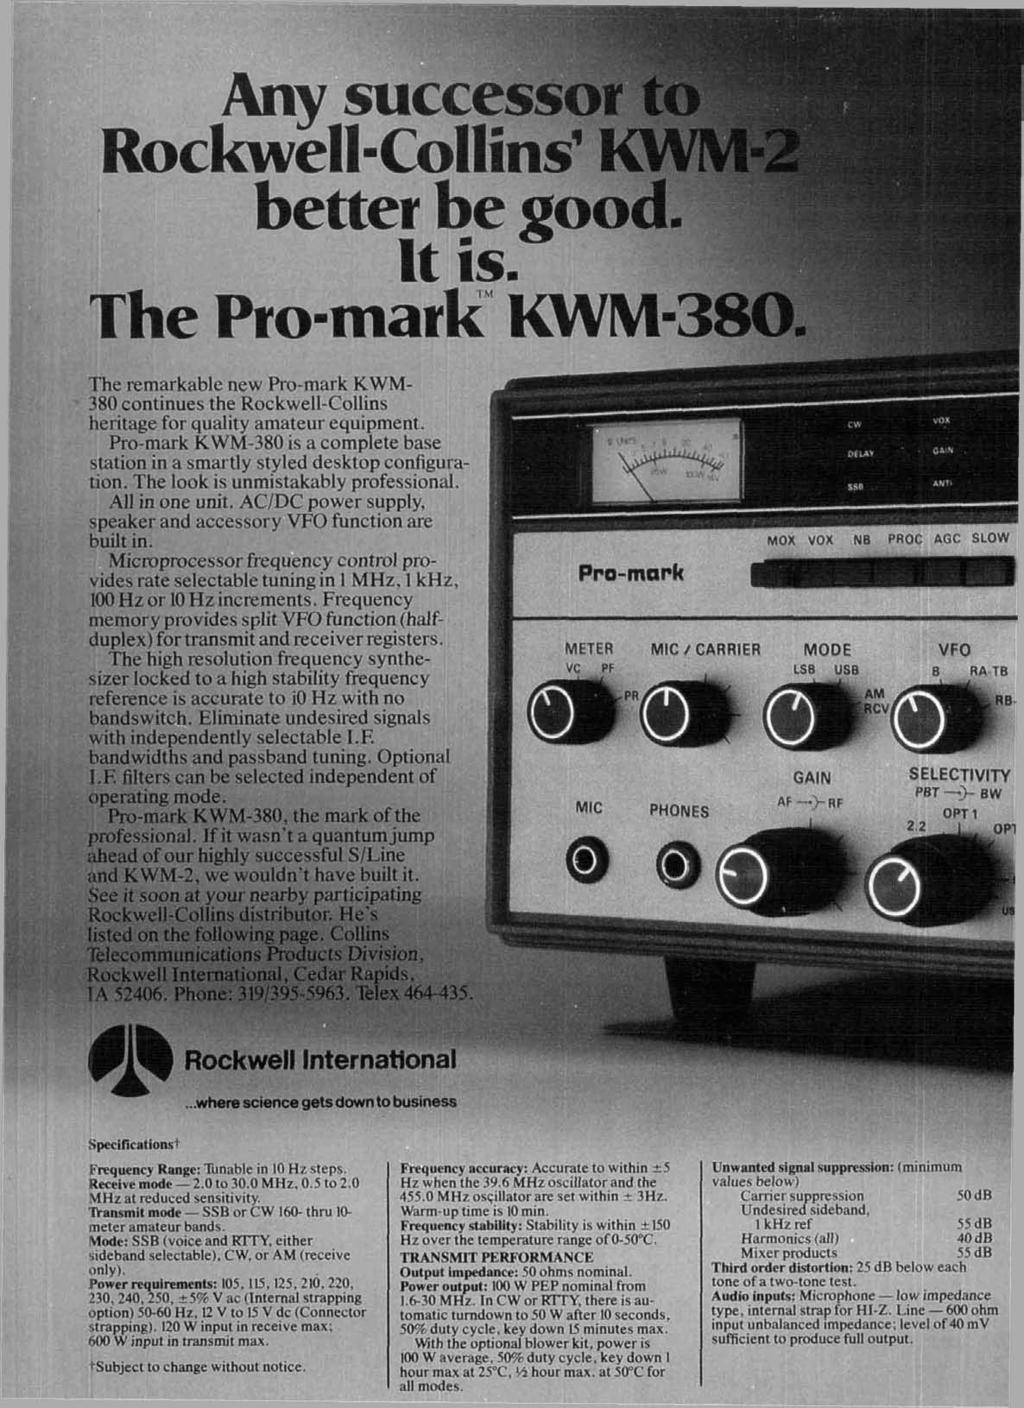 Roc ~nv successo The The remarkat 380 continues heritage for quality amateur equipment. Pro-mark KWM-380 is a complete base station in a smartly styled desktop configuration.